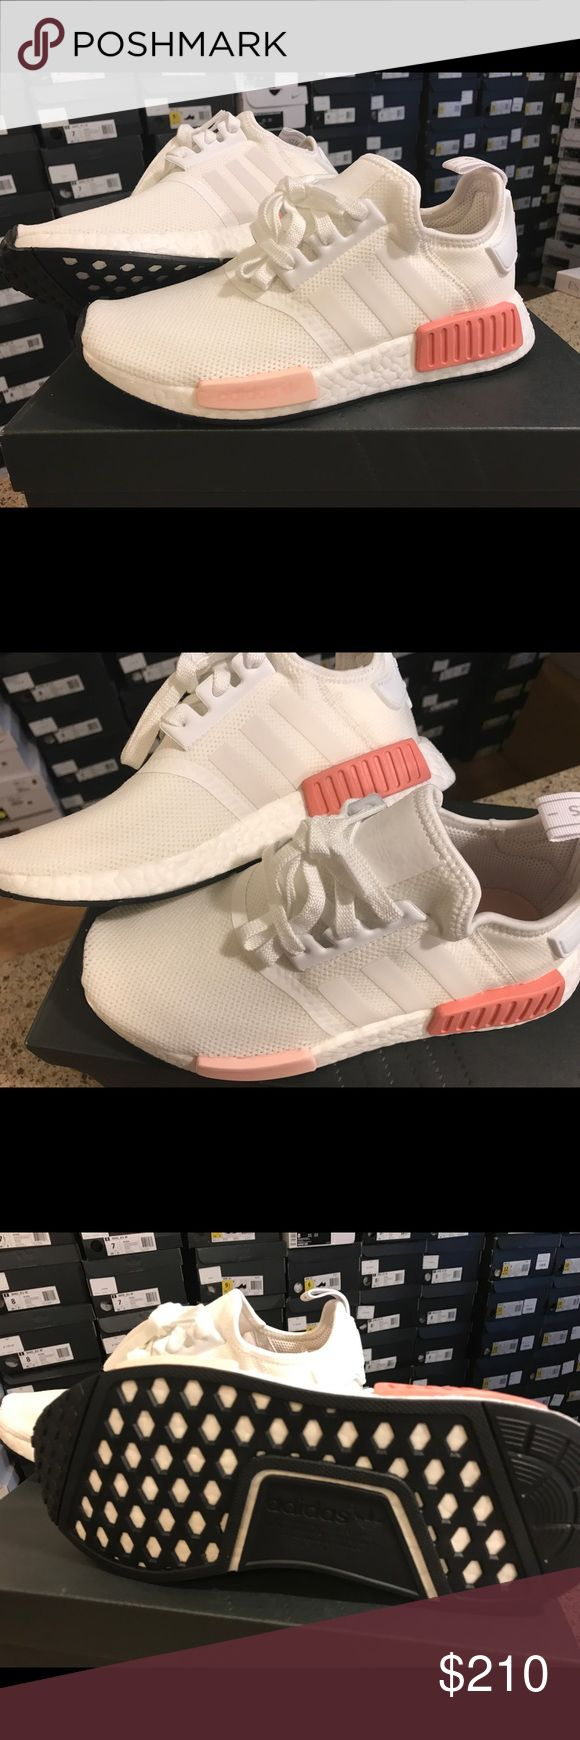 adidas rose rosa nmd tour shoesonline